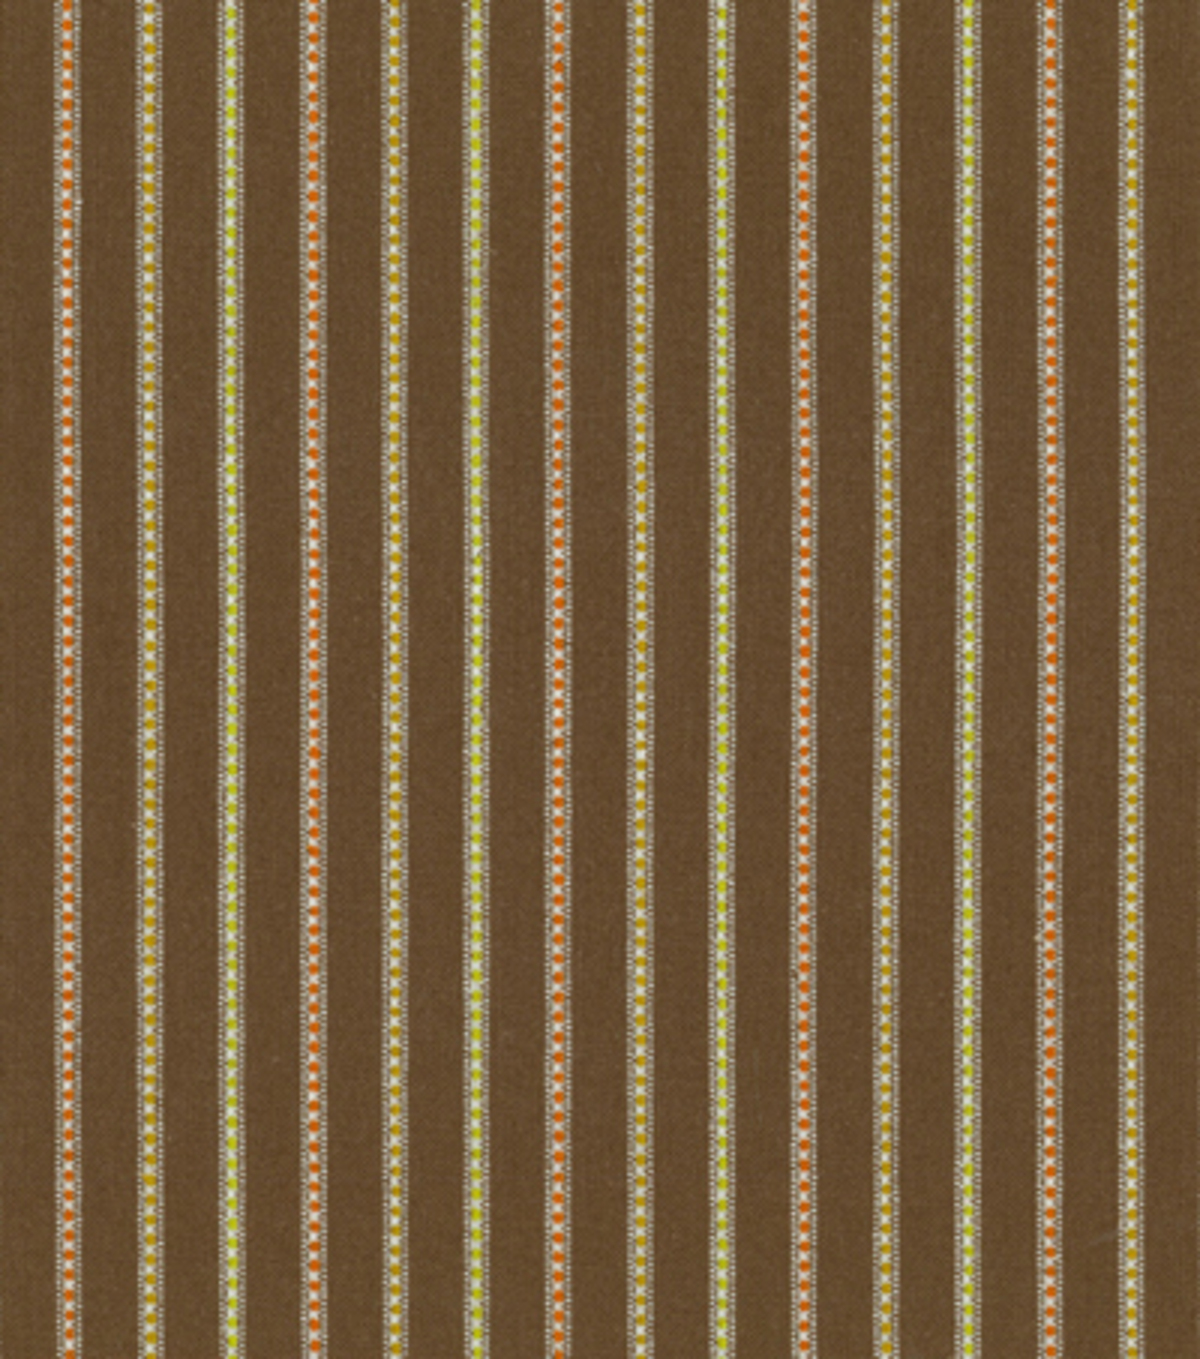 Home Decor 8\u0022x8\u0022 Fabric Swatch-Upholstery Fabric-Waverly Highwire/Autumn